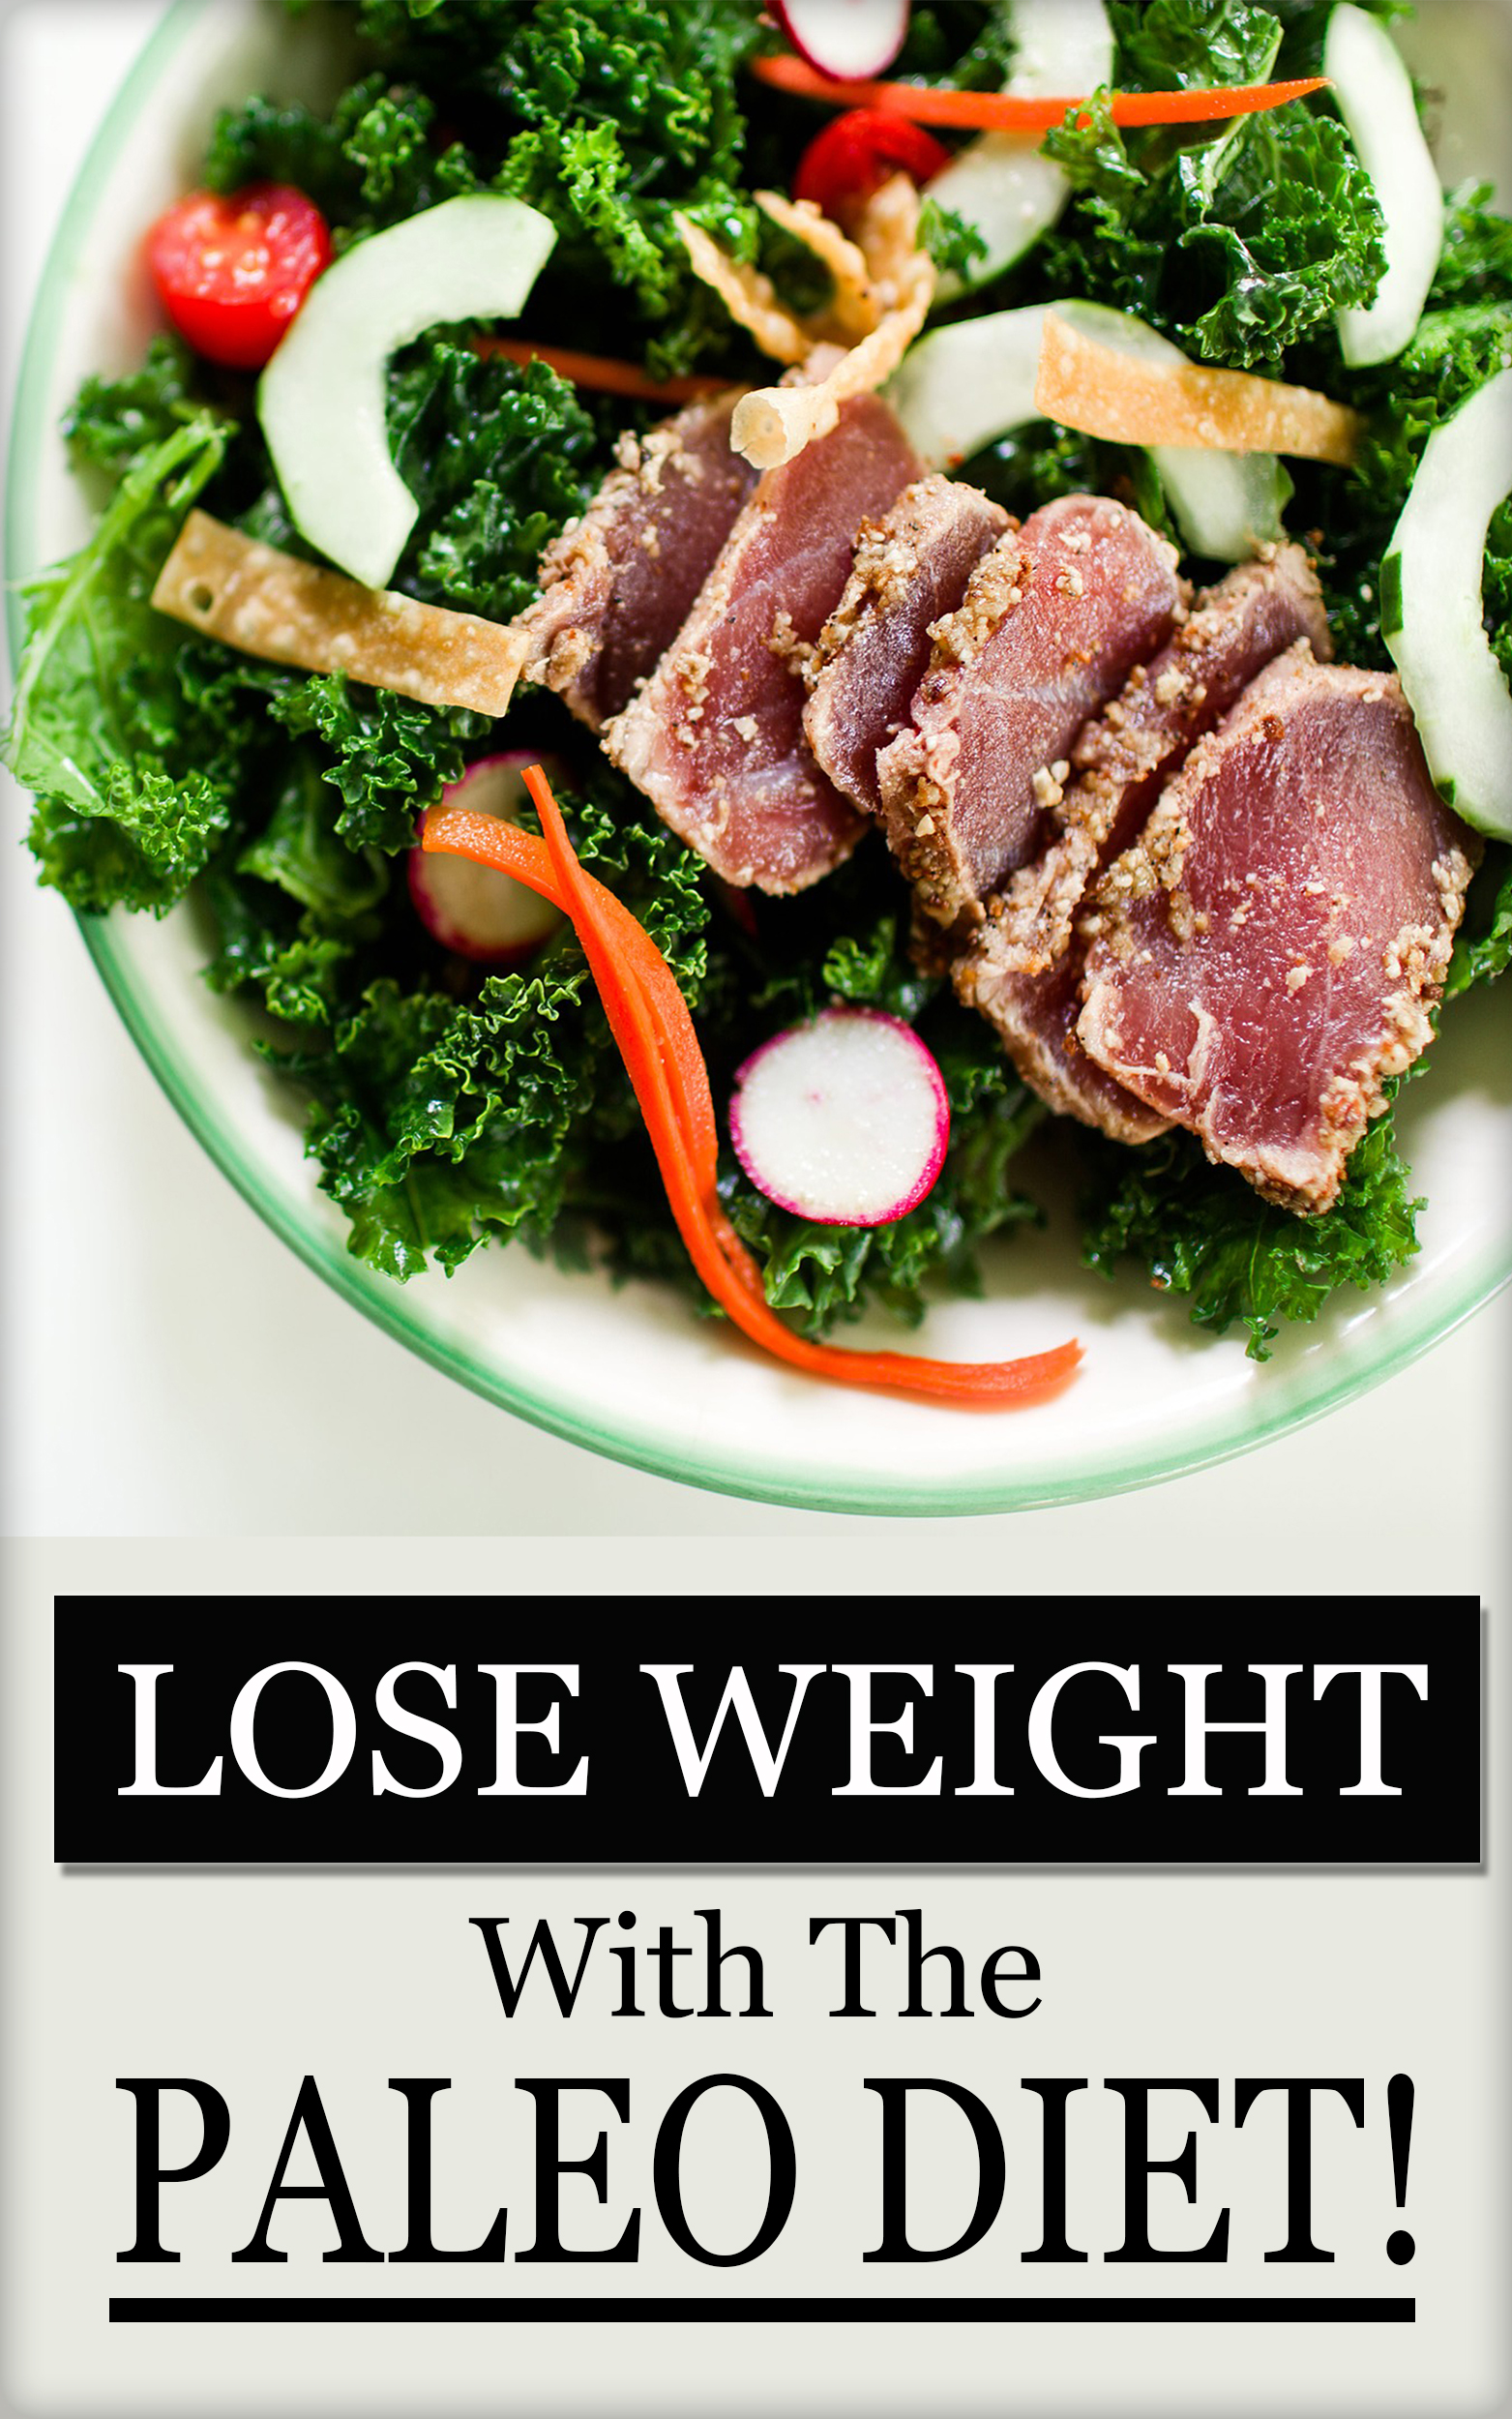 Consider Losing Weight With The Paleo Diet! - free ebook